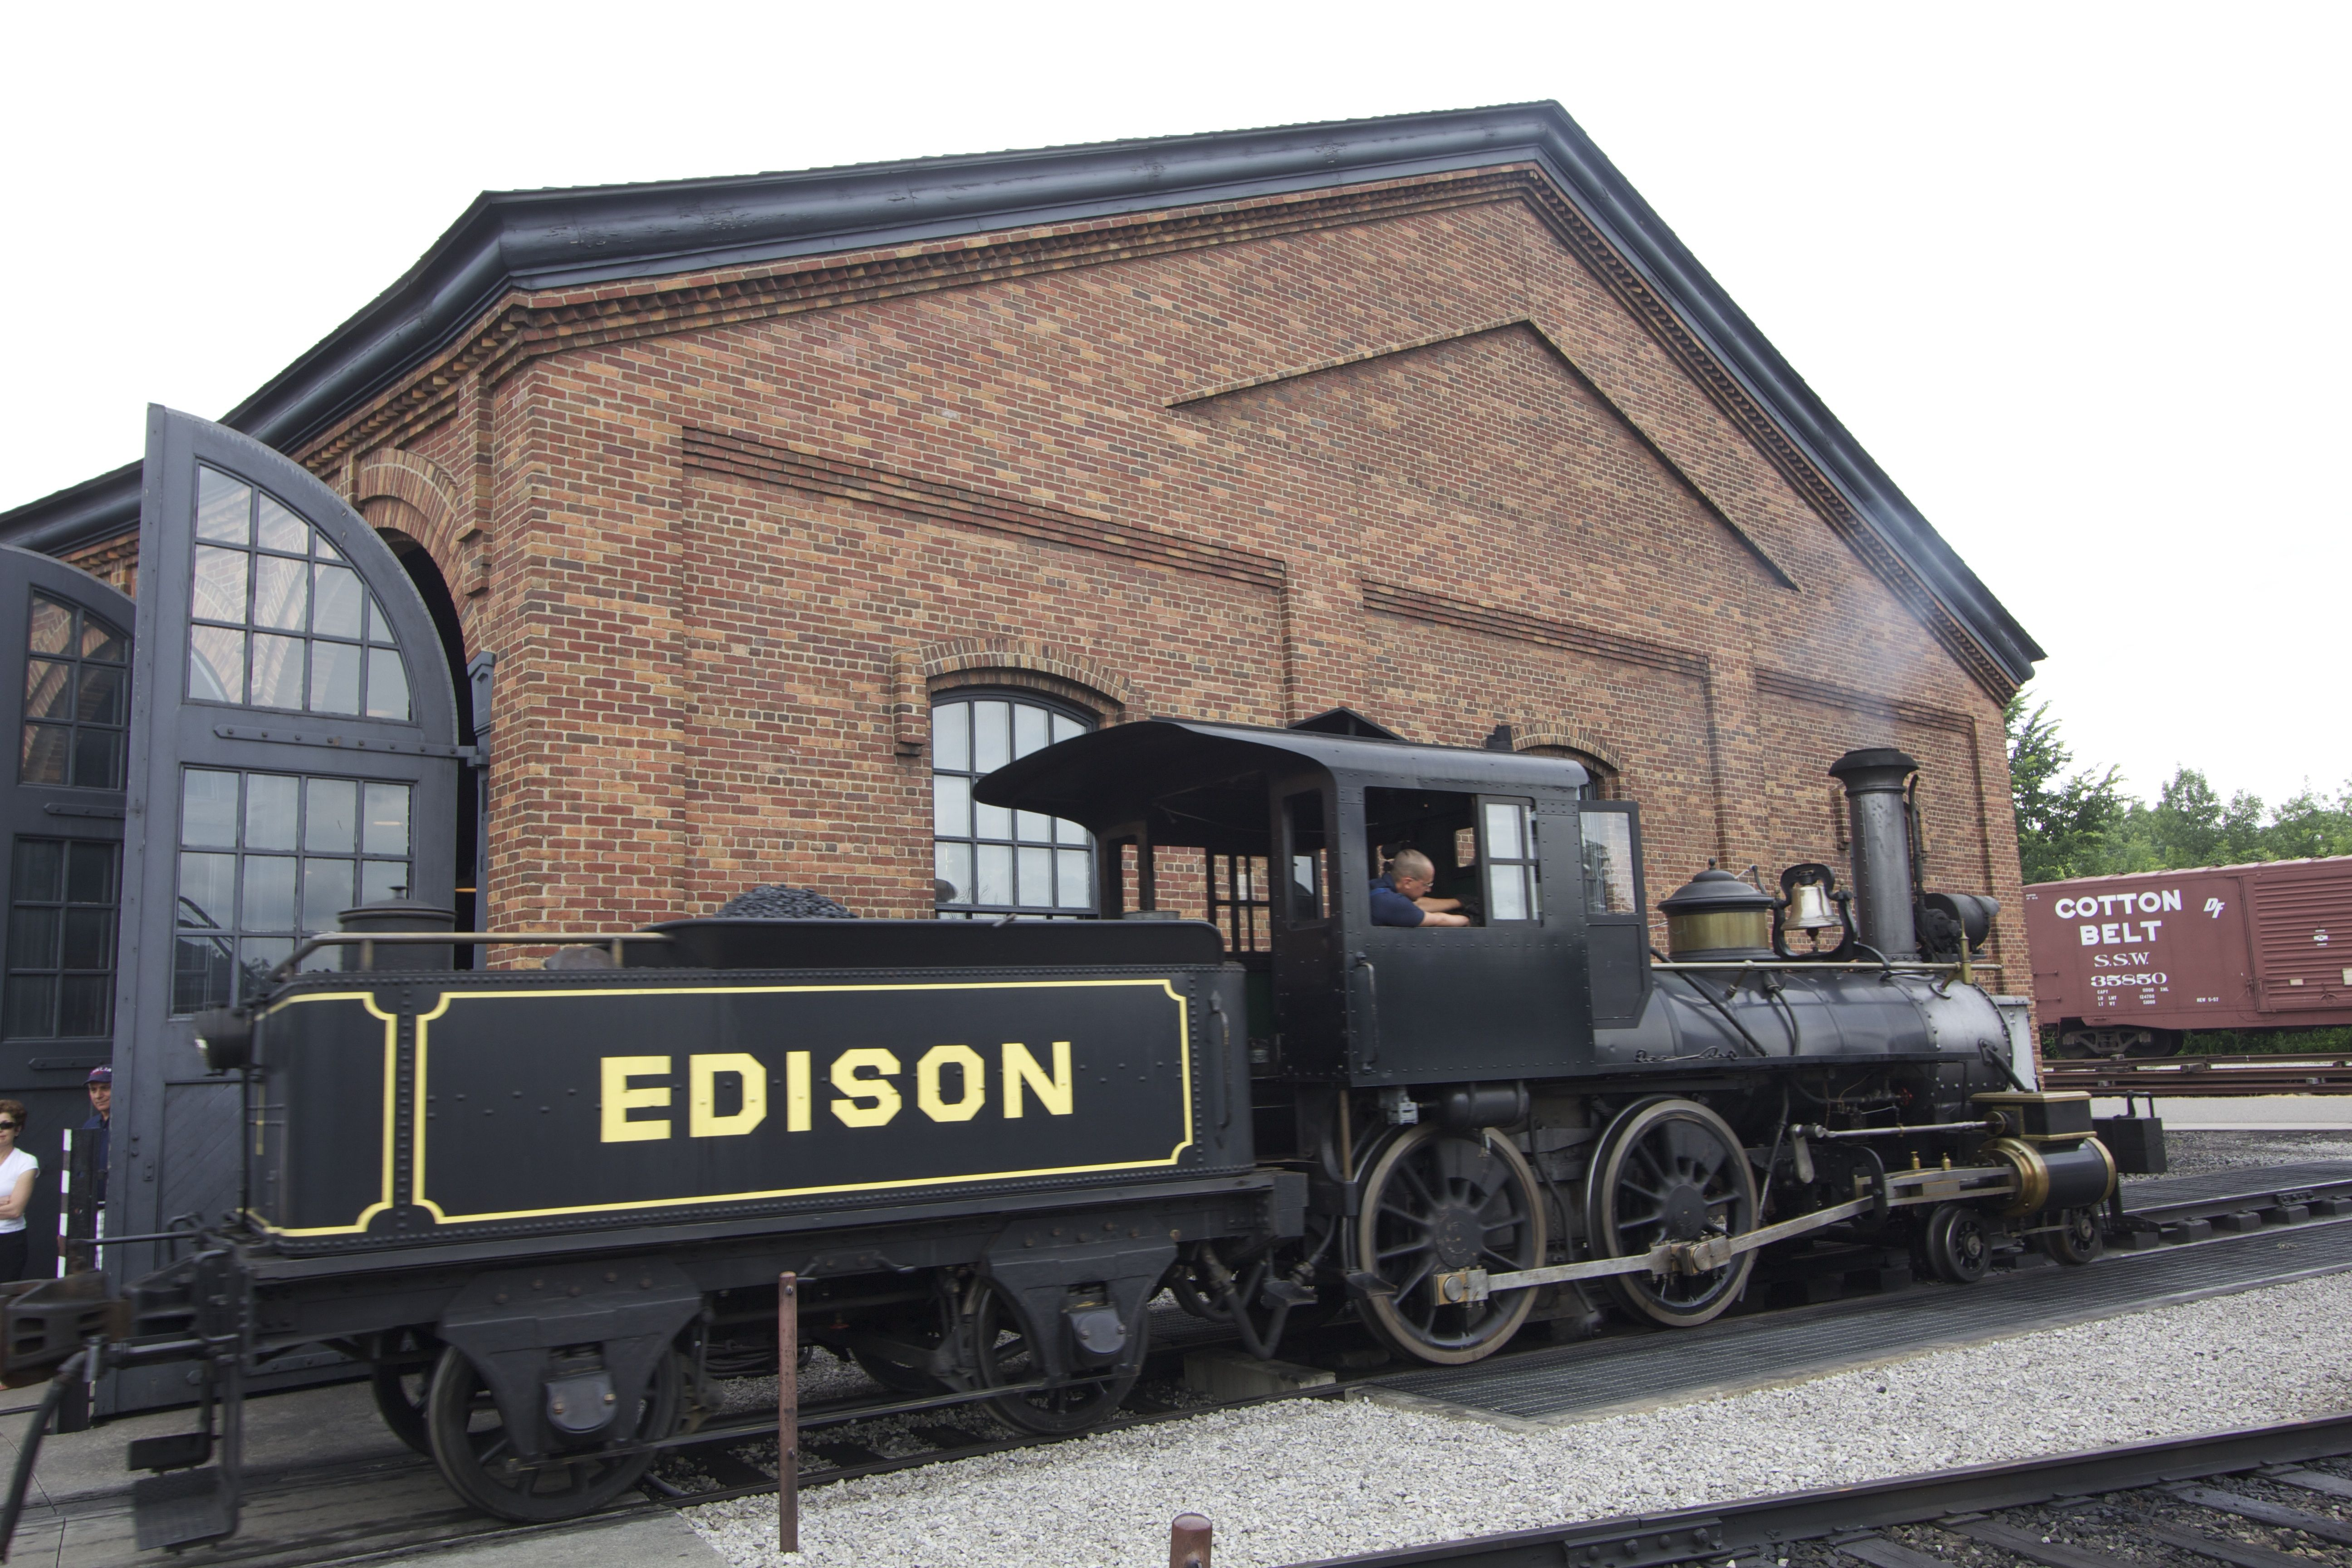 EDISON Train at Greenfield